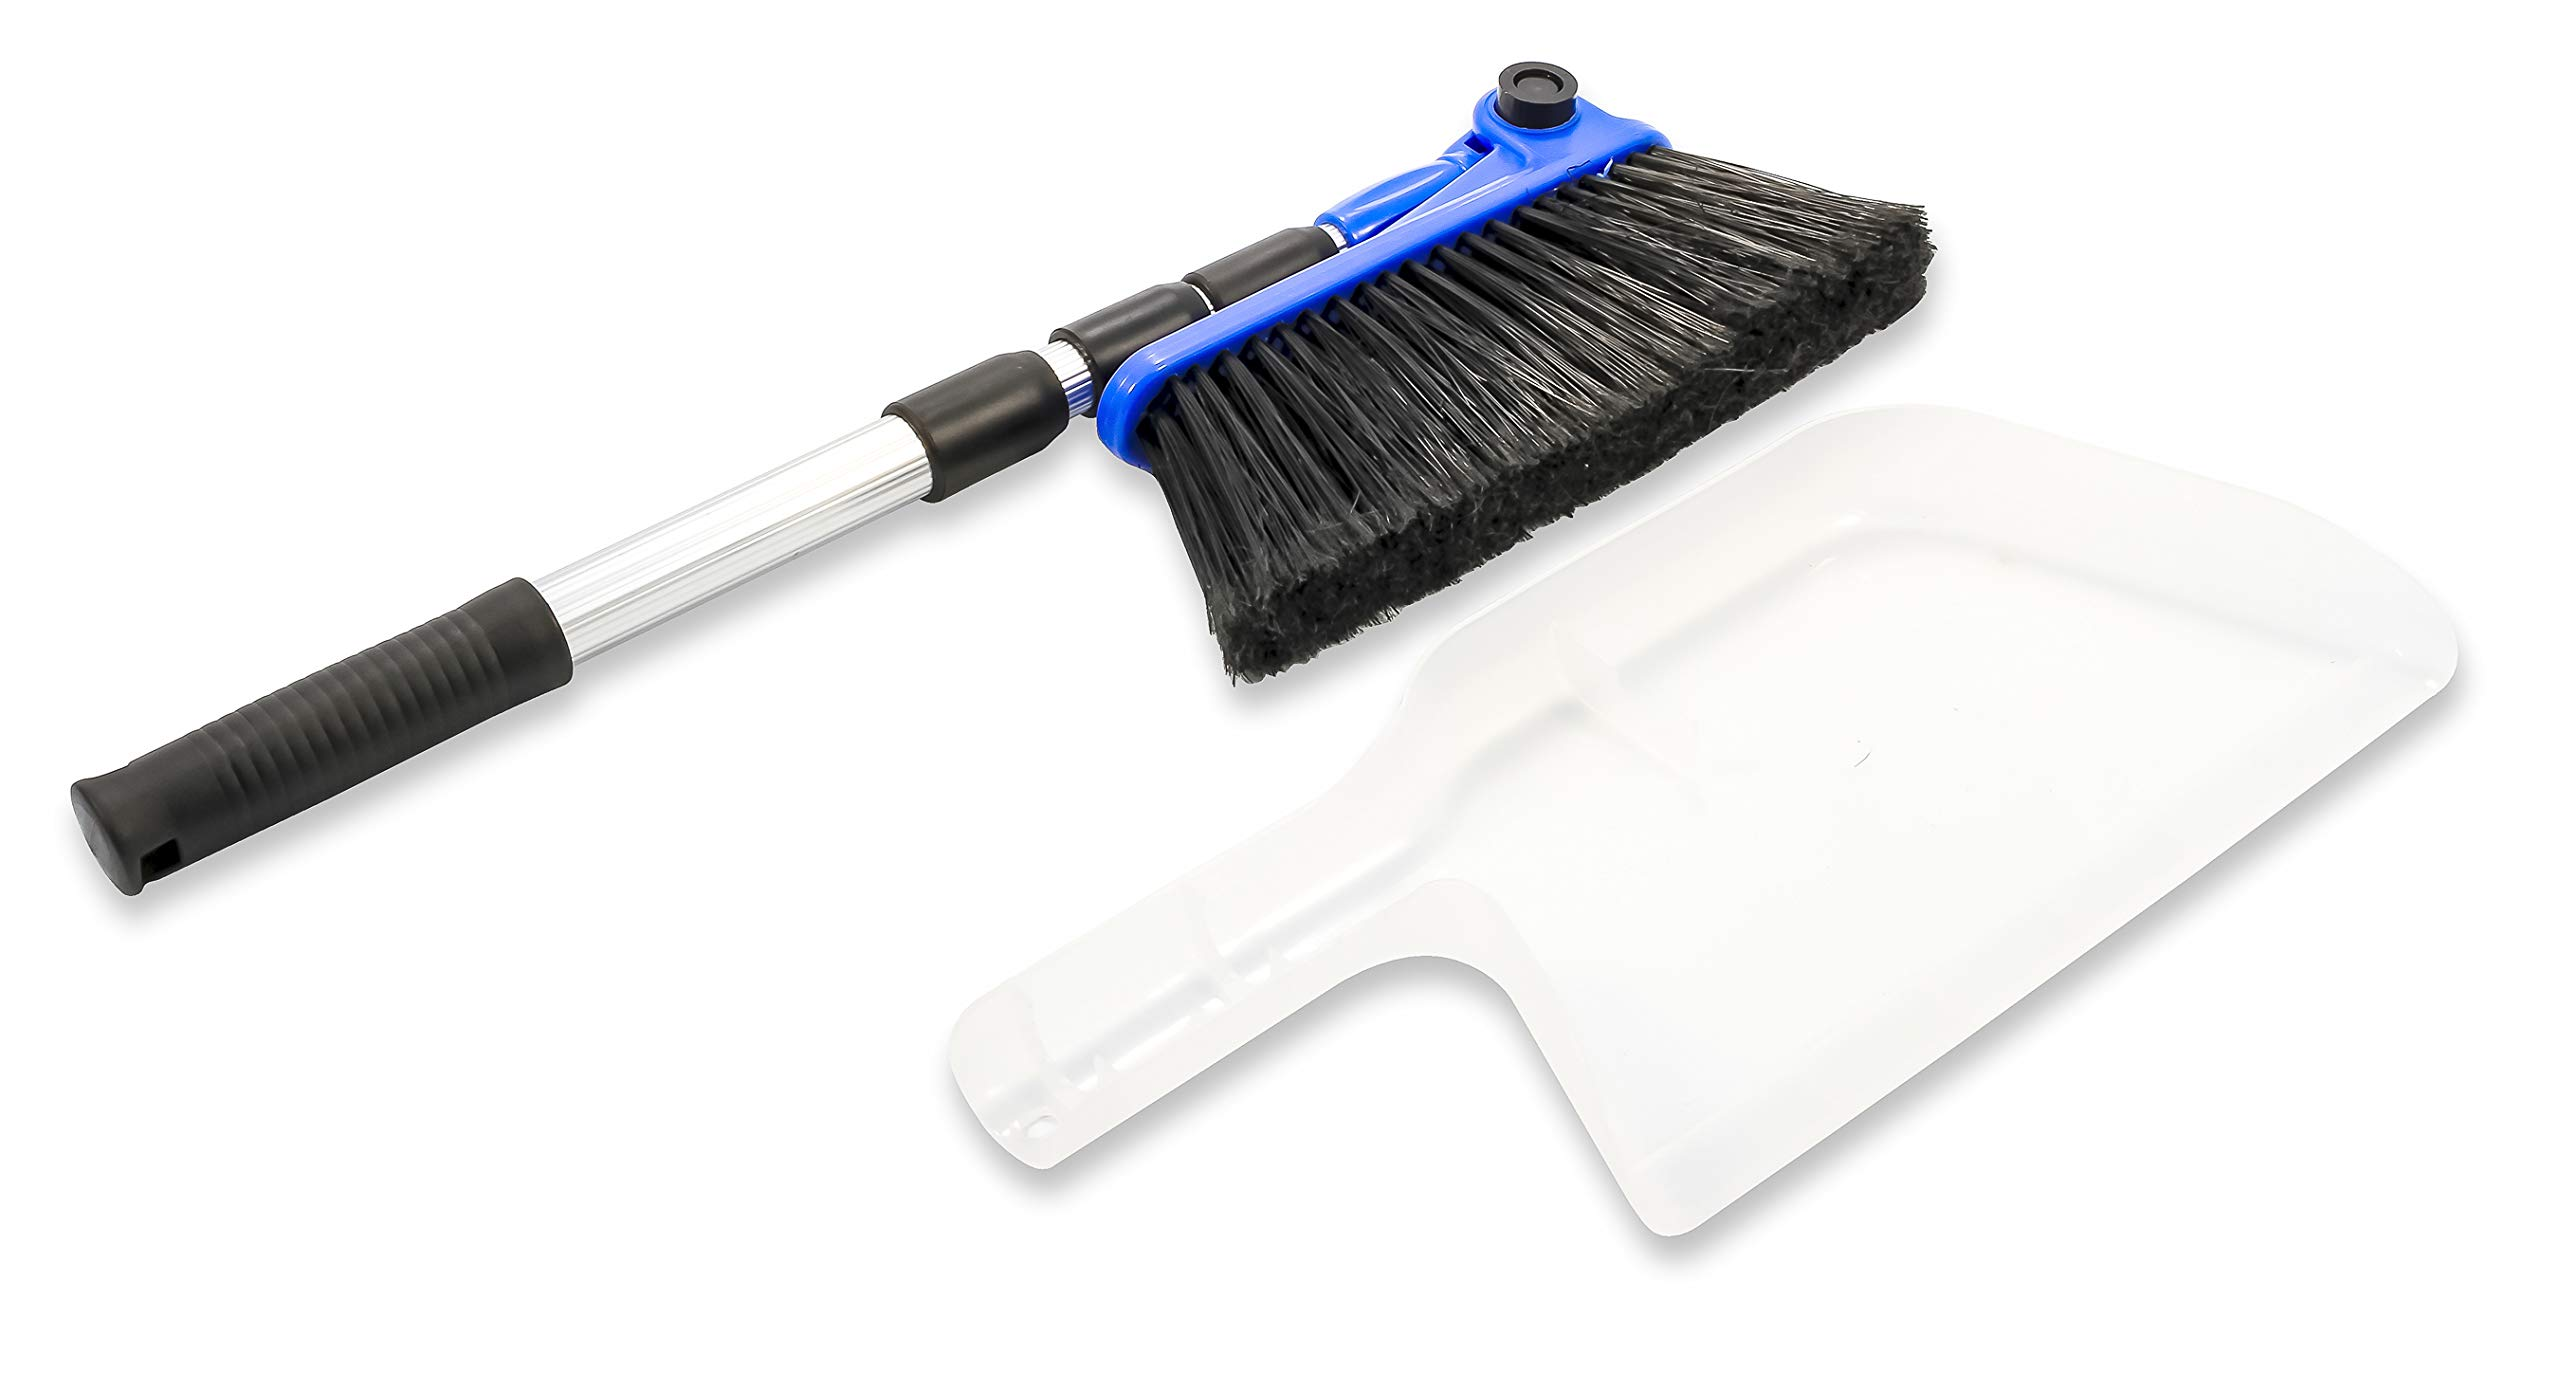 """Camco Mfg 43623 Adjustable RV Broom & Dustpan 3 Adjusts to different angles Dustpan clips onto broom handle for storage 52"""" long broom telescopes down to just 24"""" for compact storage"""